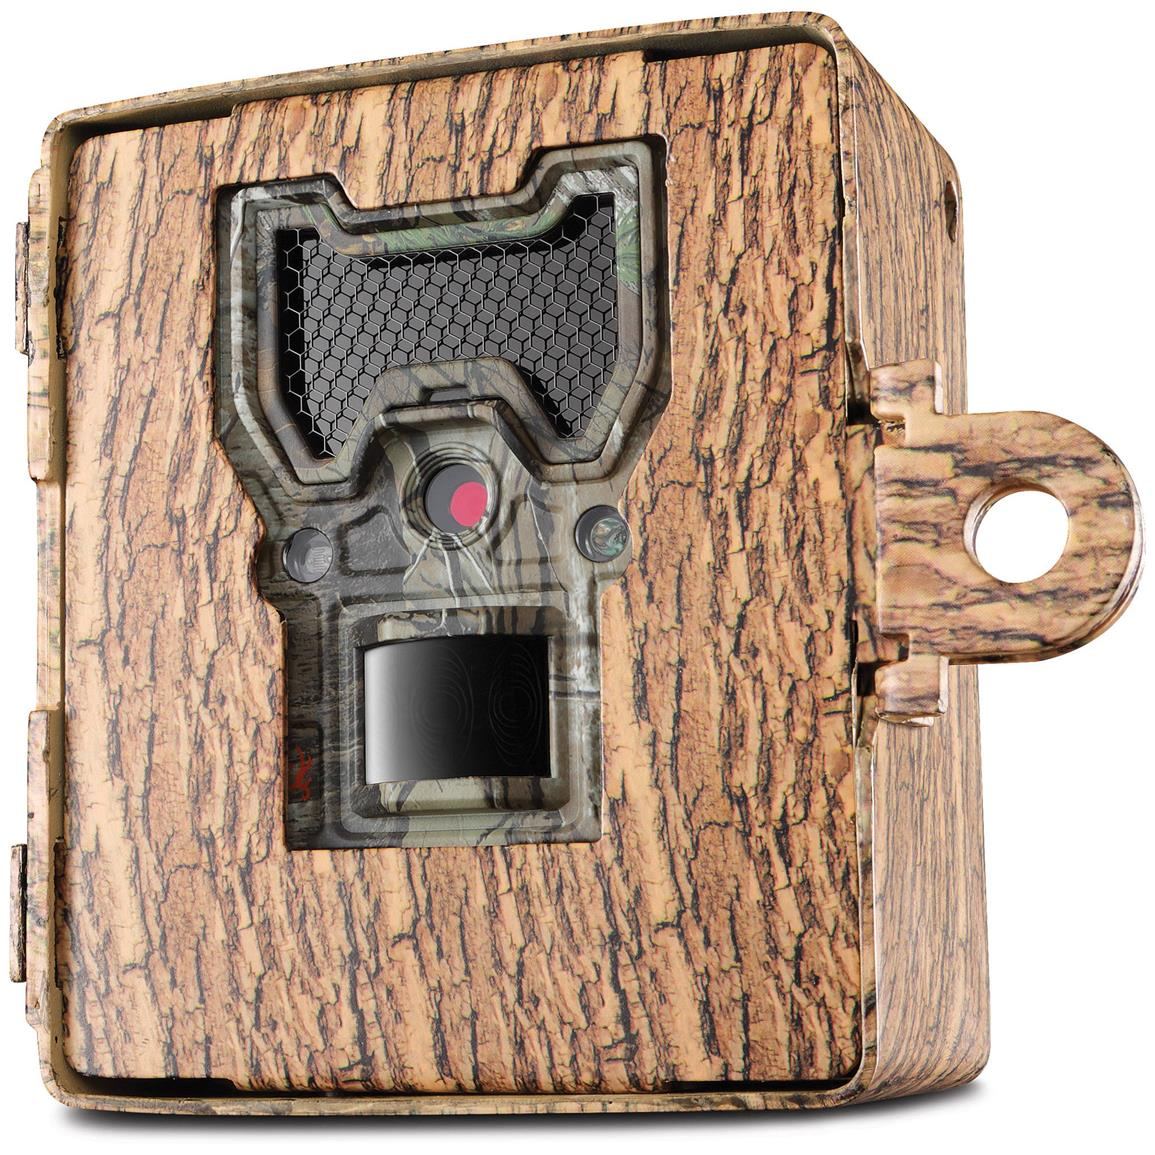 Bushnell Aggressor Trail / Game Camera Security Box